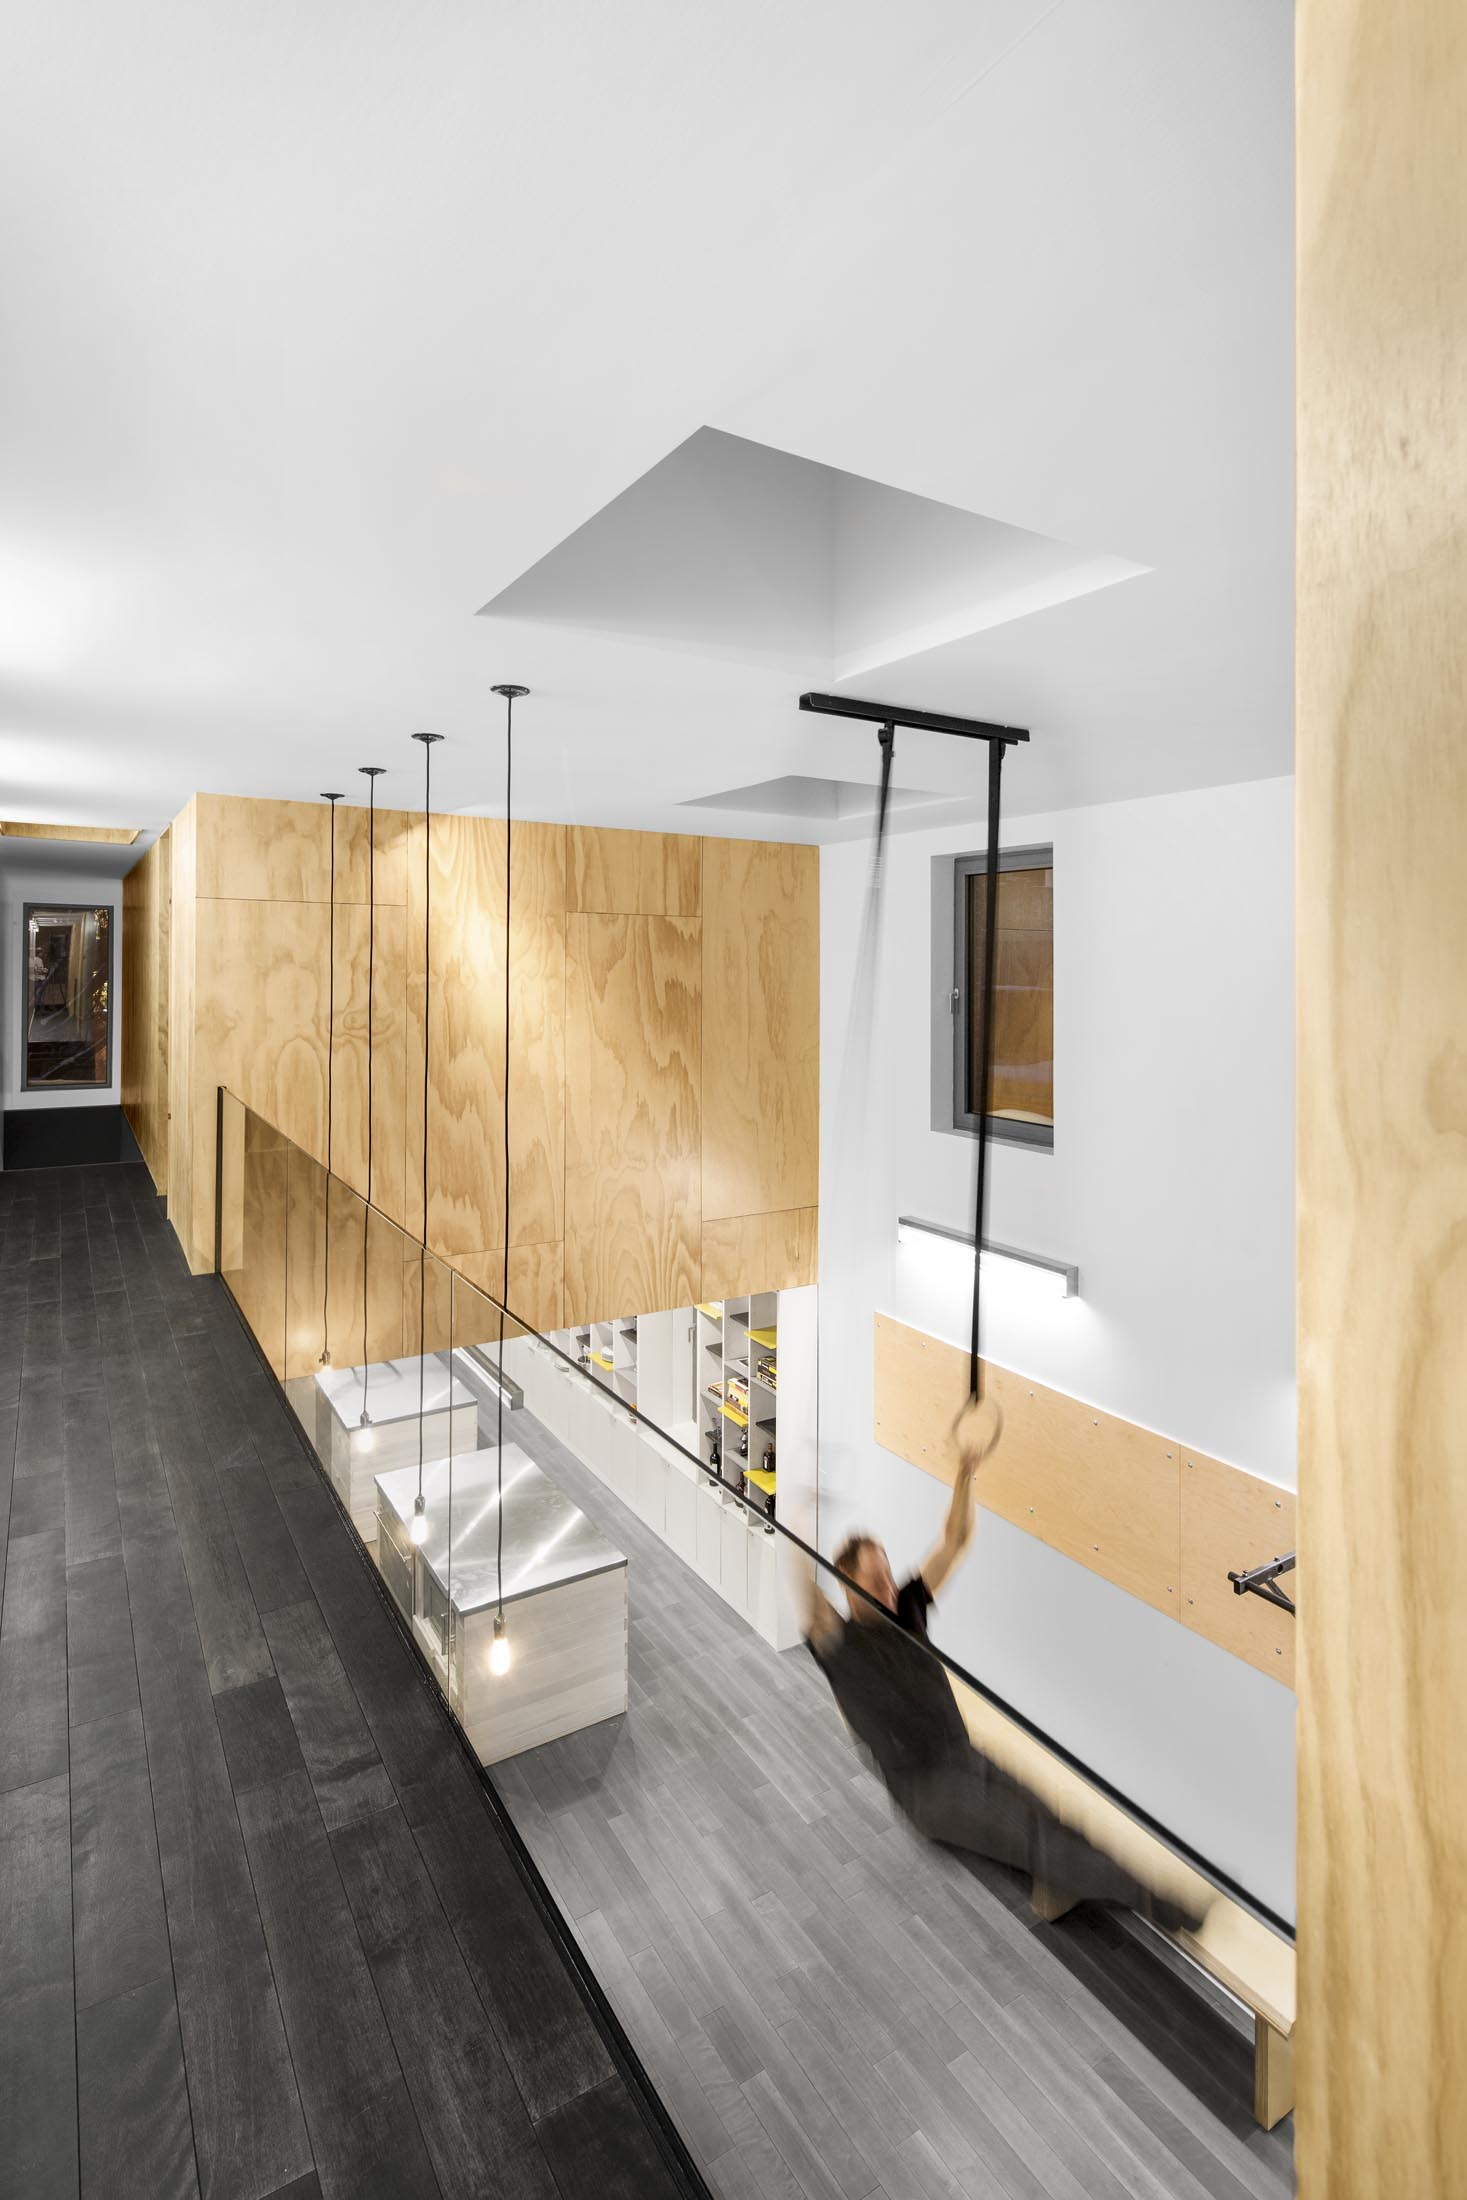 In Suspension Athletic House by Naturehumaine